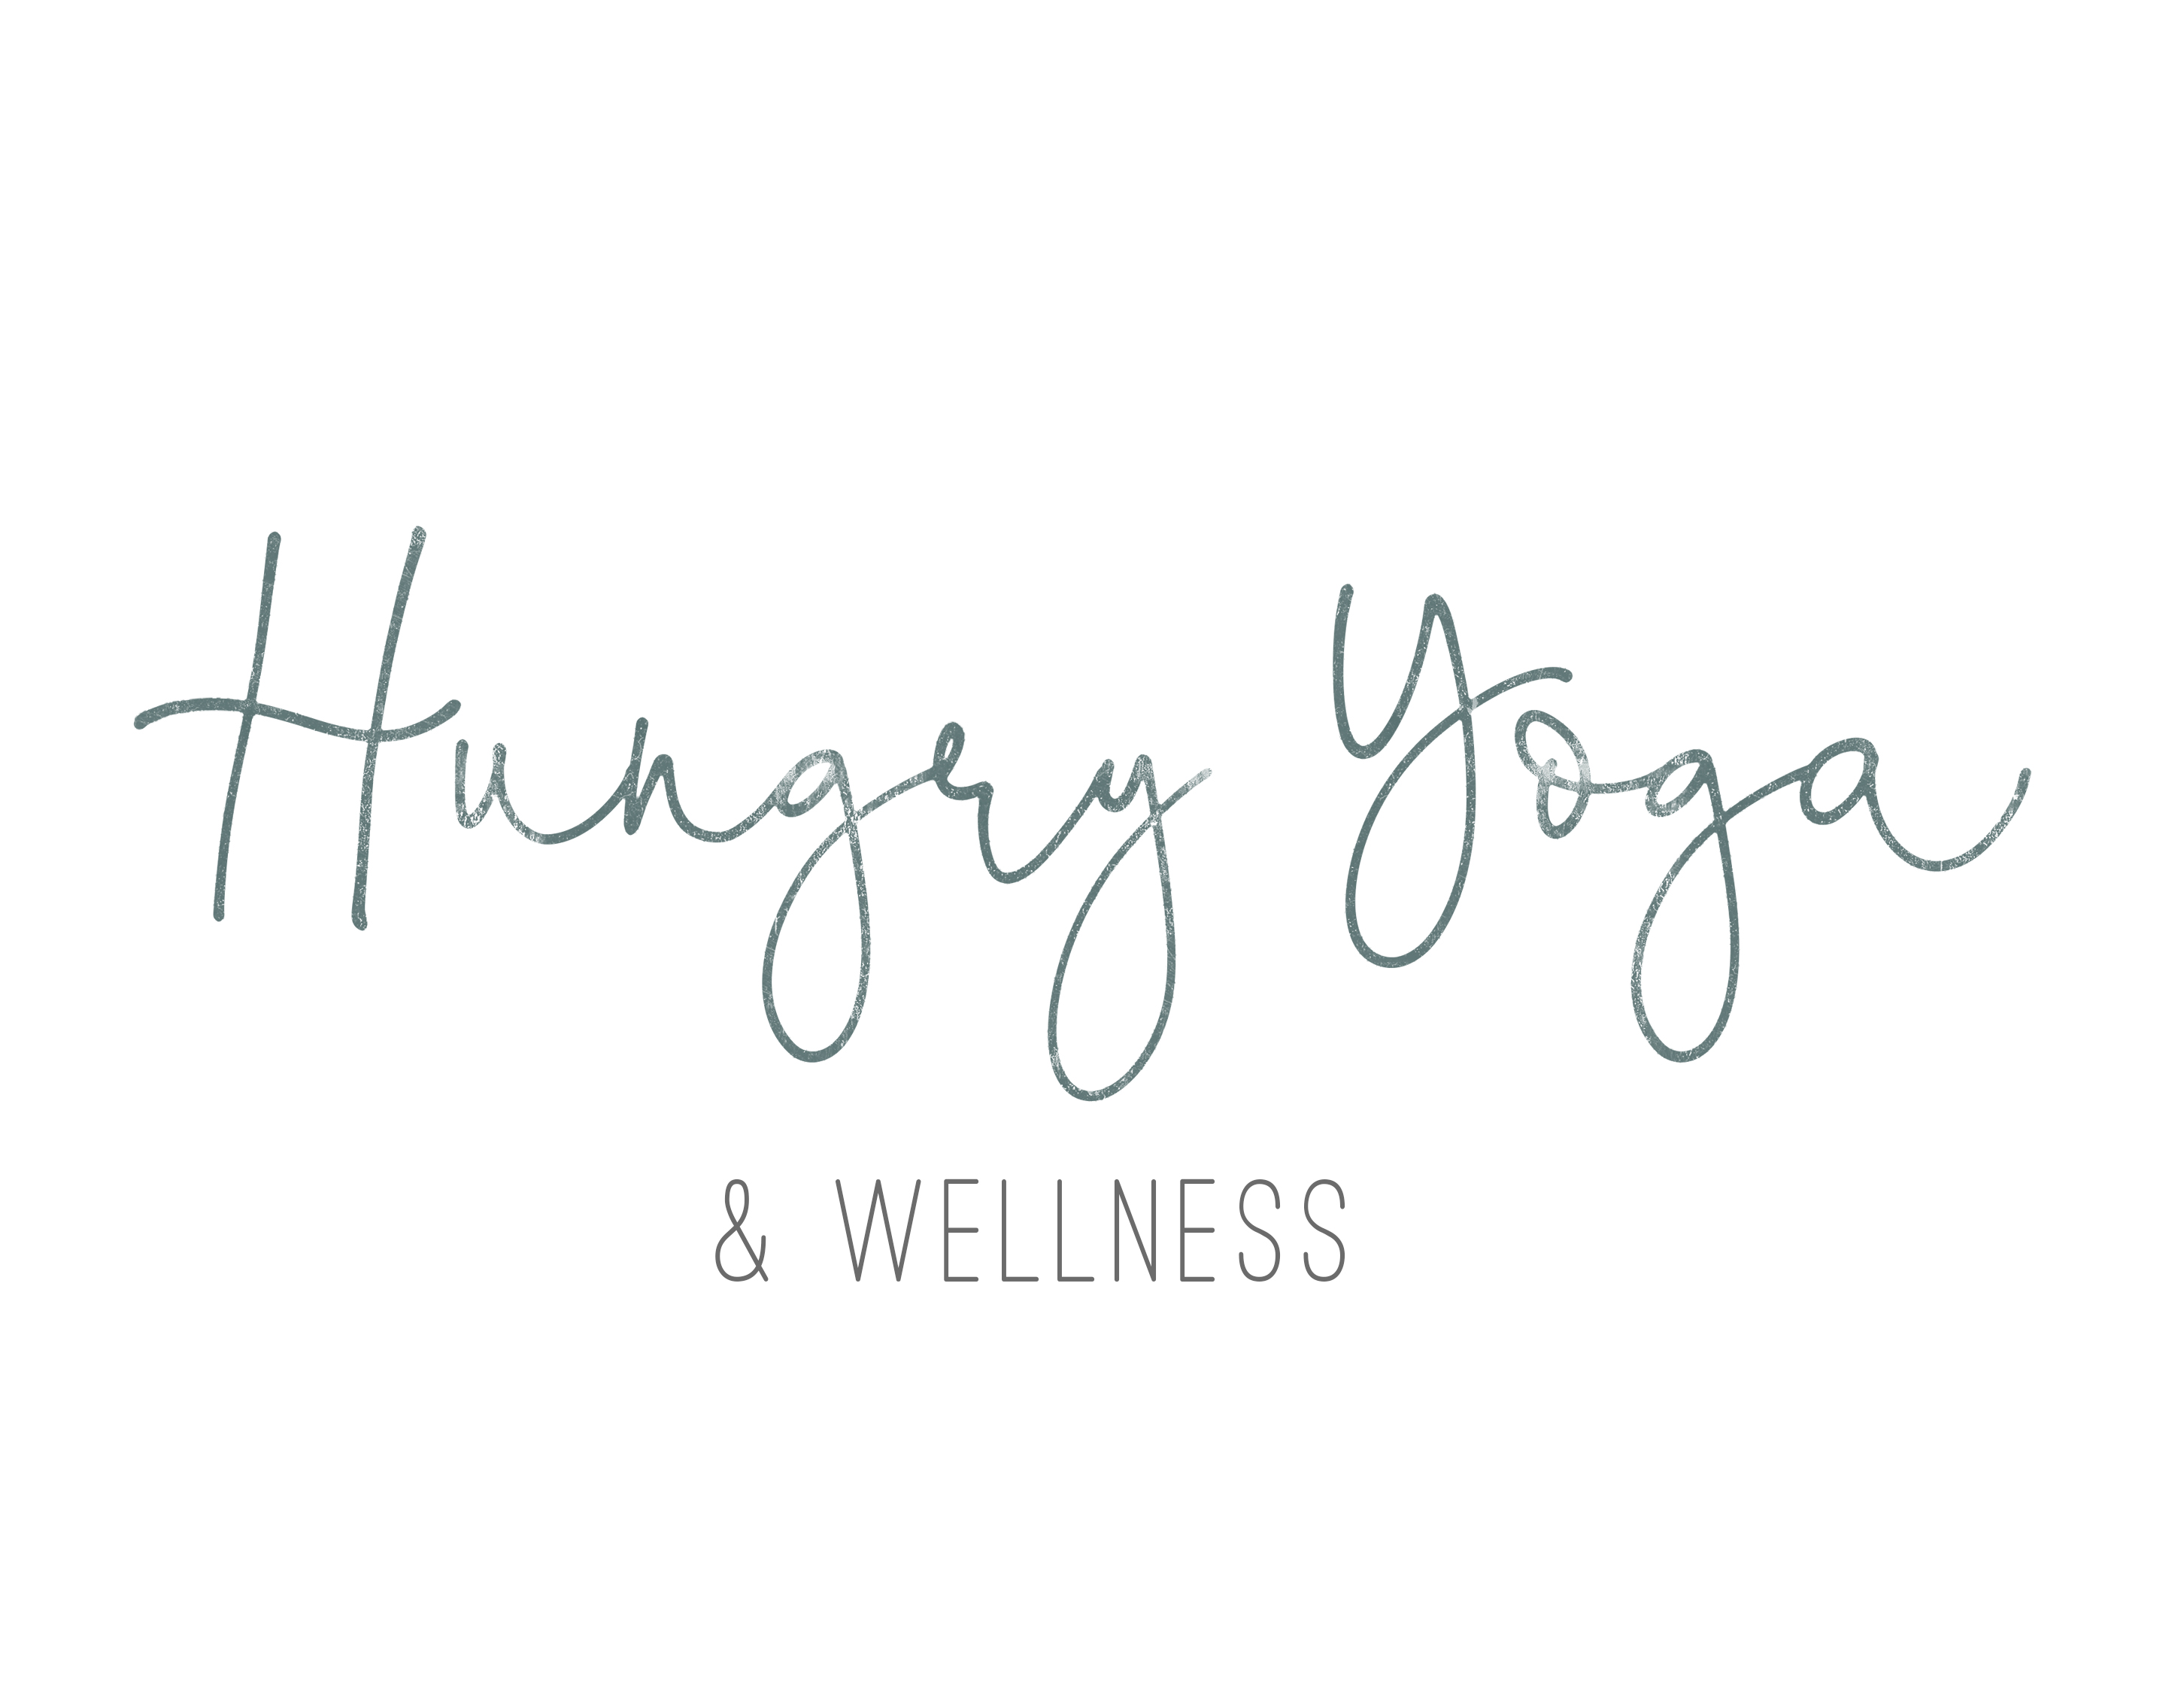 Hungry Yoga & Wellness